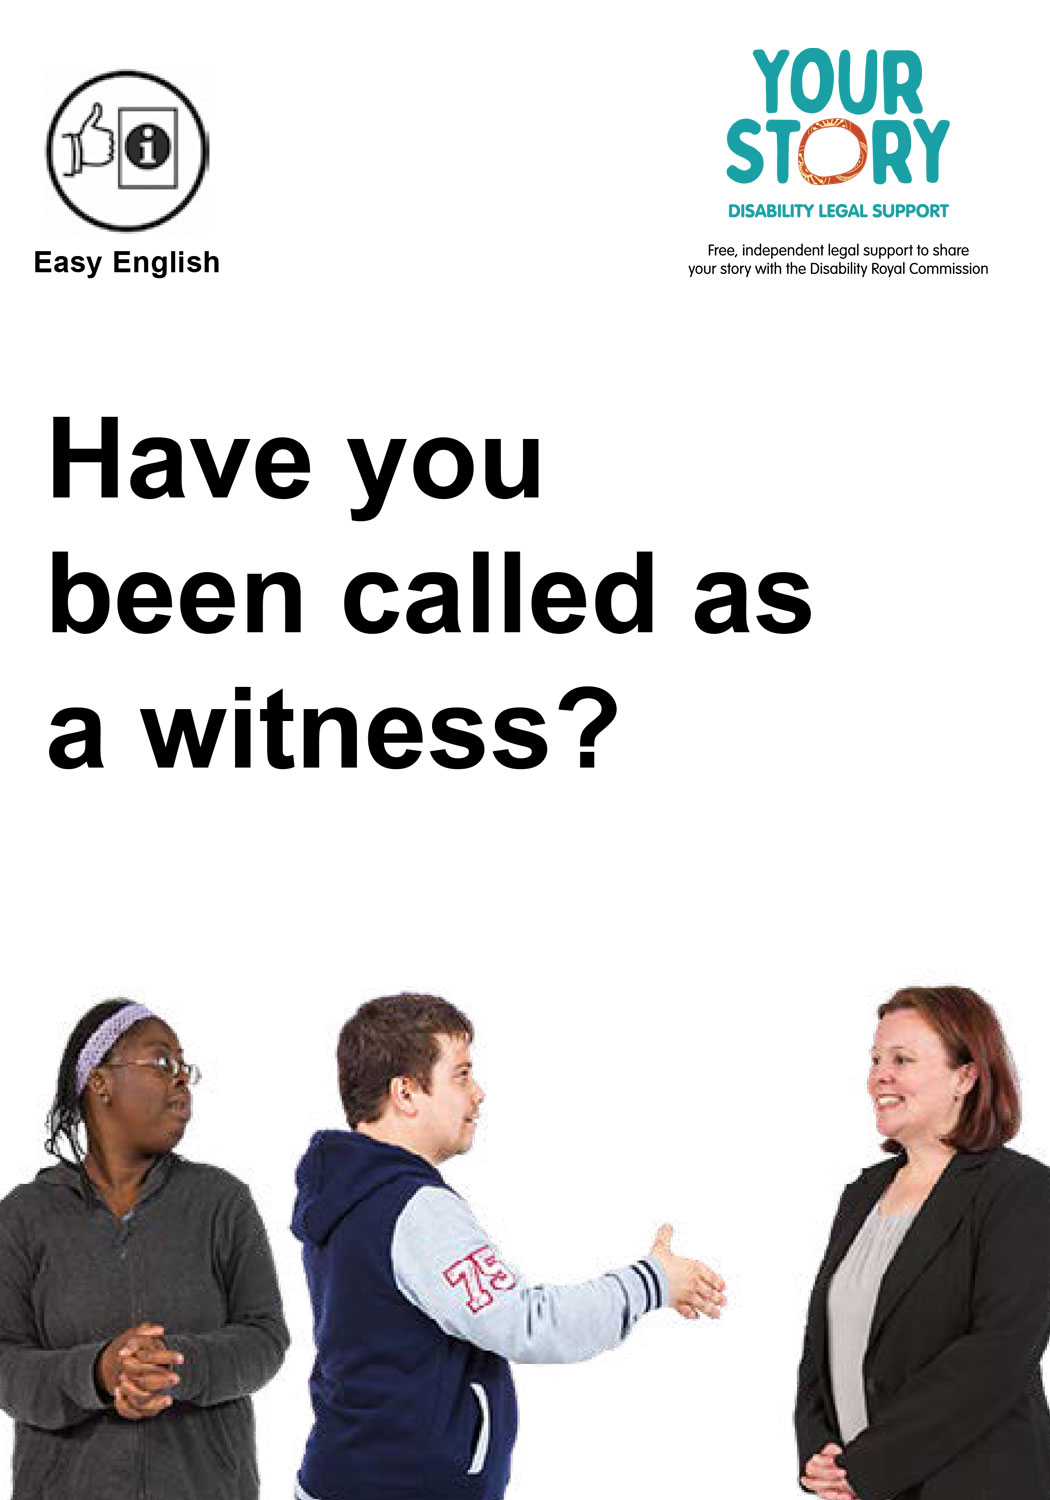 Have you been called as a witness